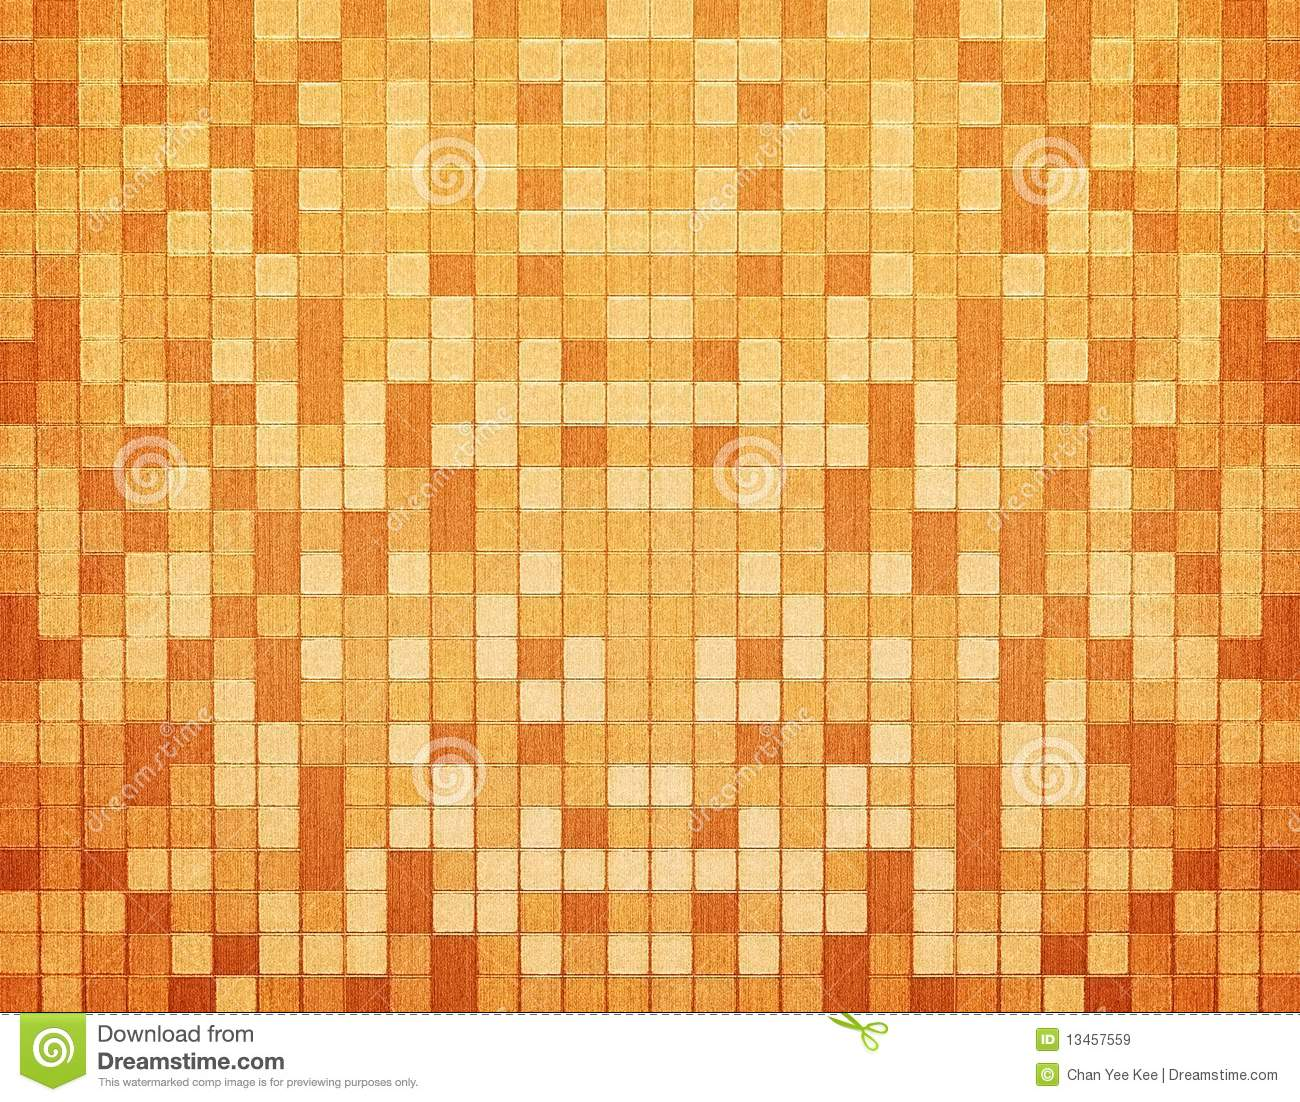 mosaic wallpaper royalty free stock images image 13457559